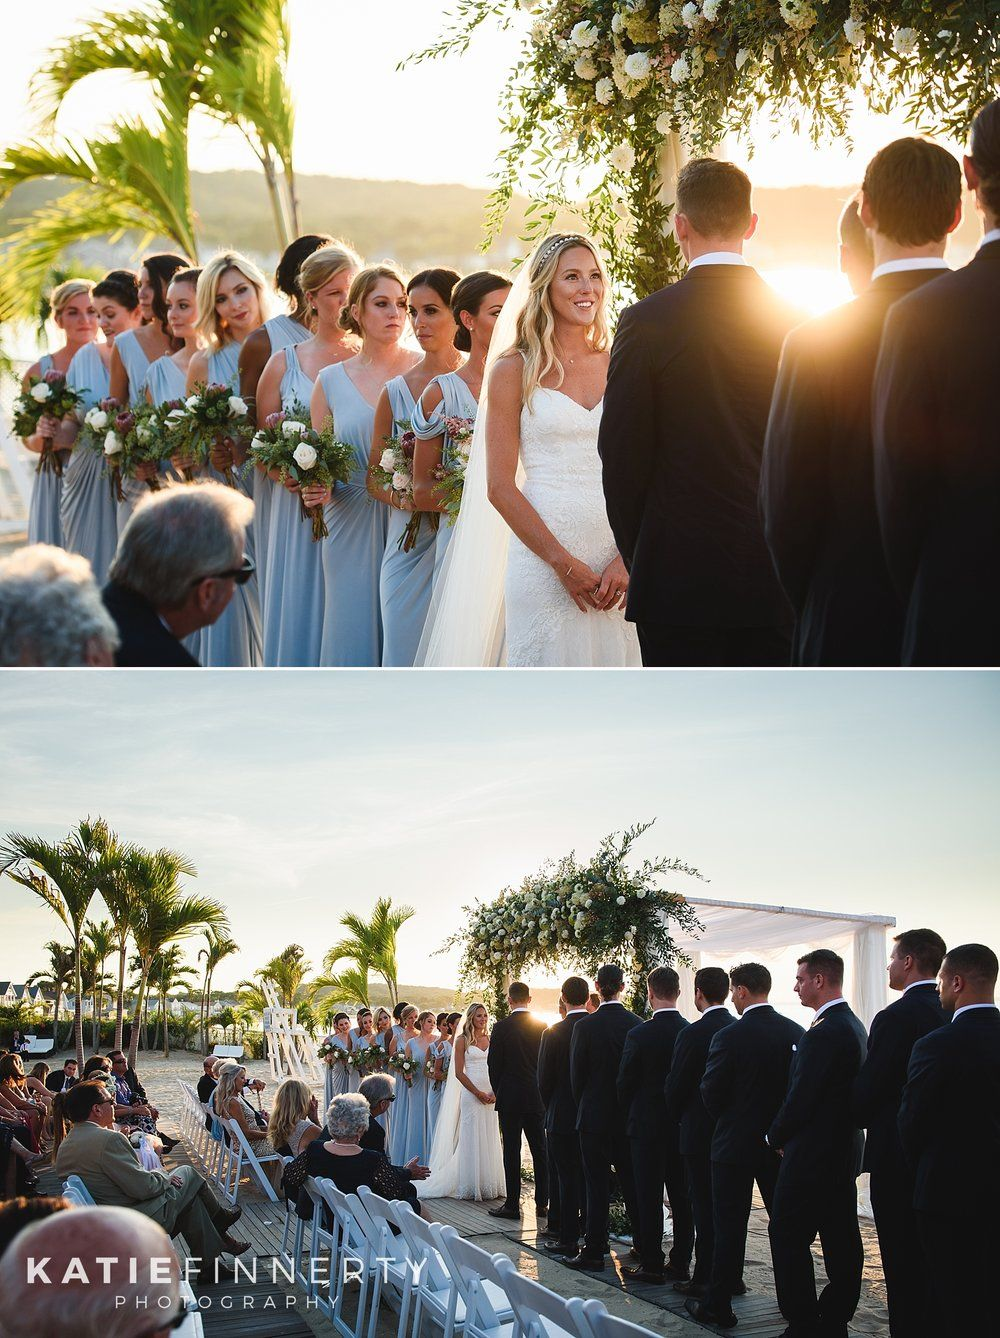 Sunset Beach Wedding Ceremony At Long Islands Crescent Club Photographed By Rochester NY